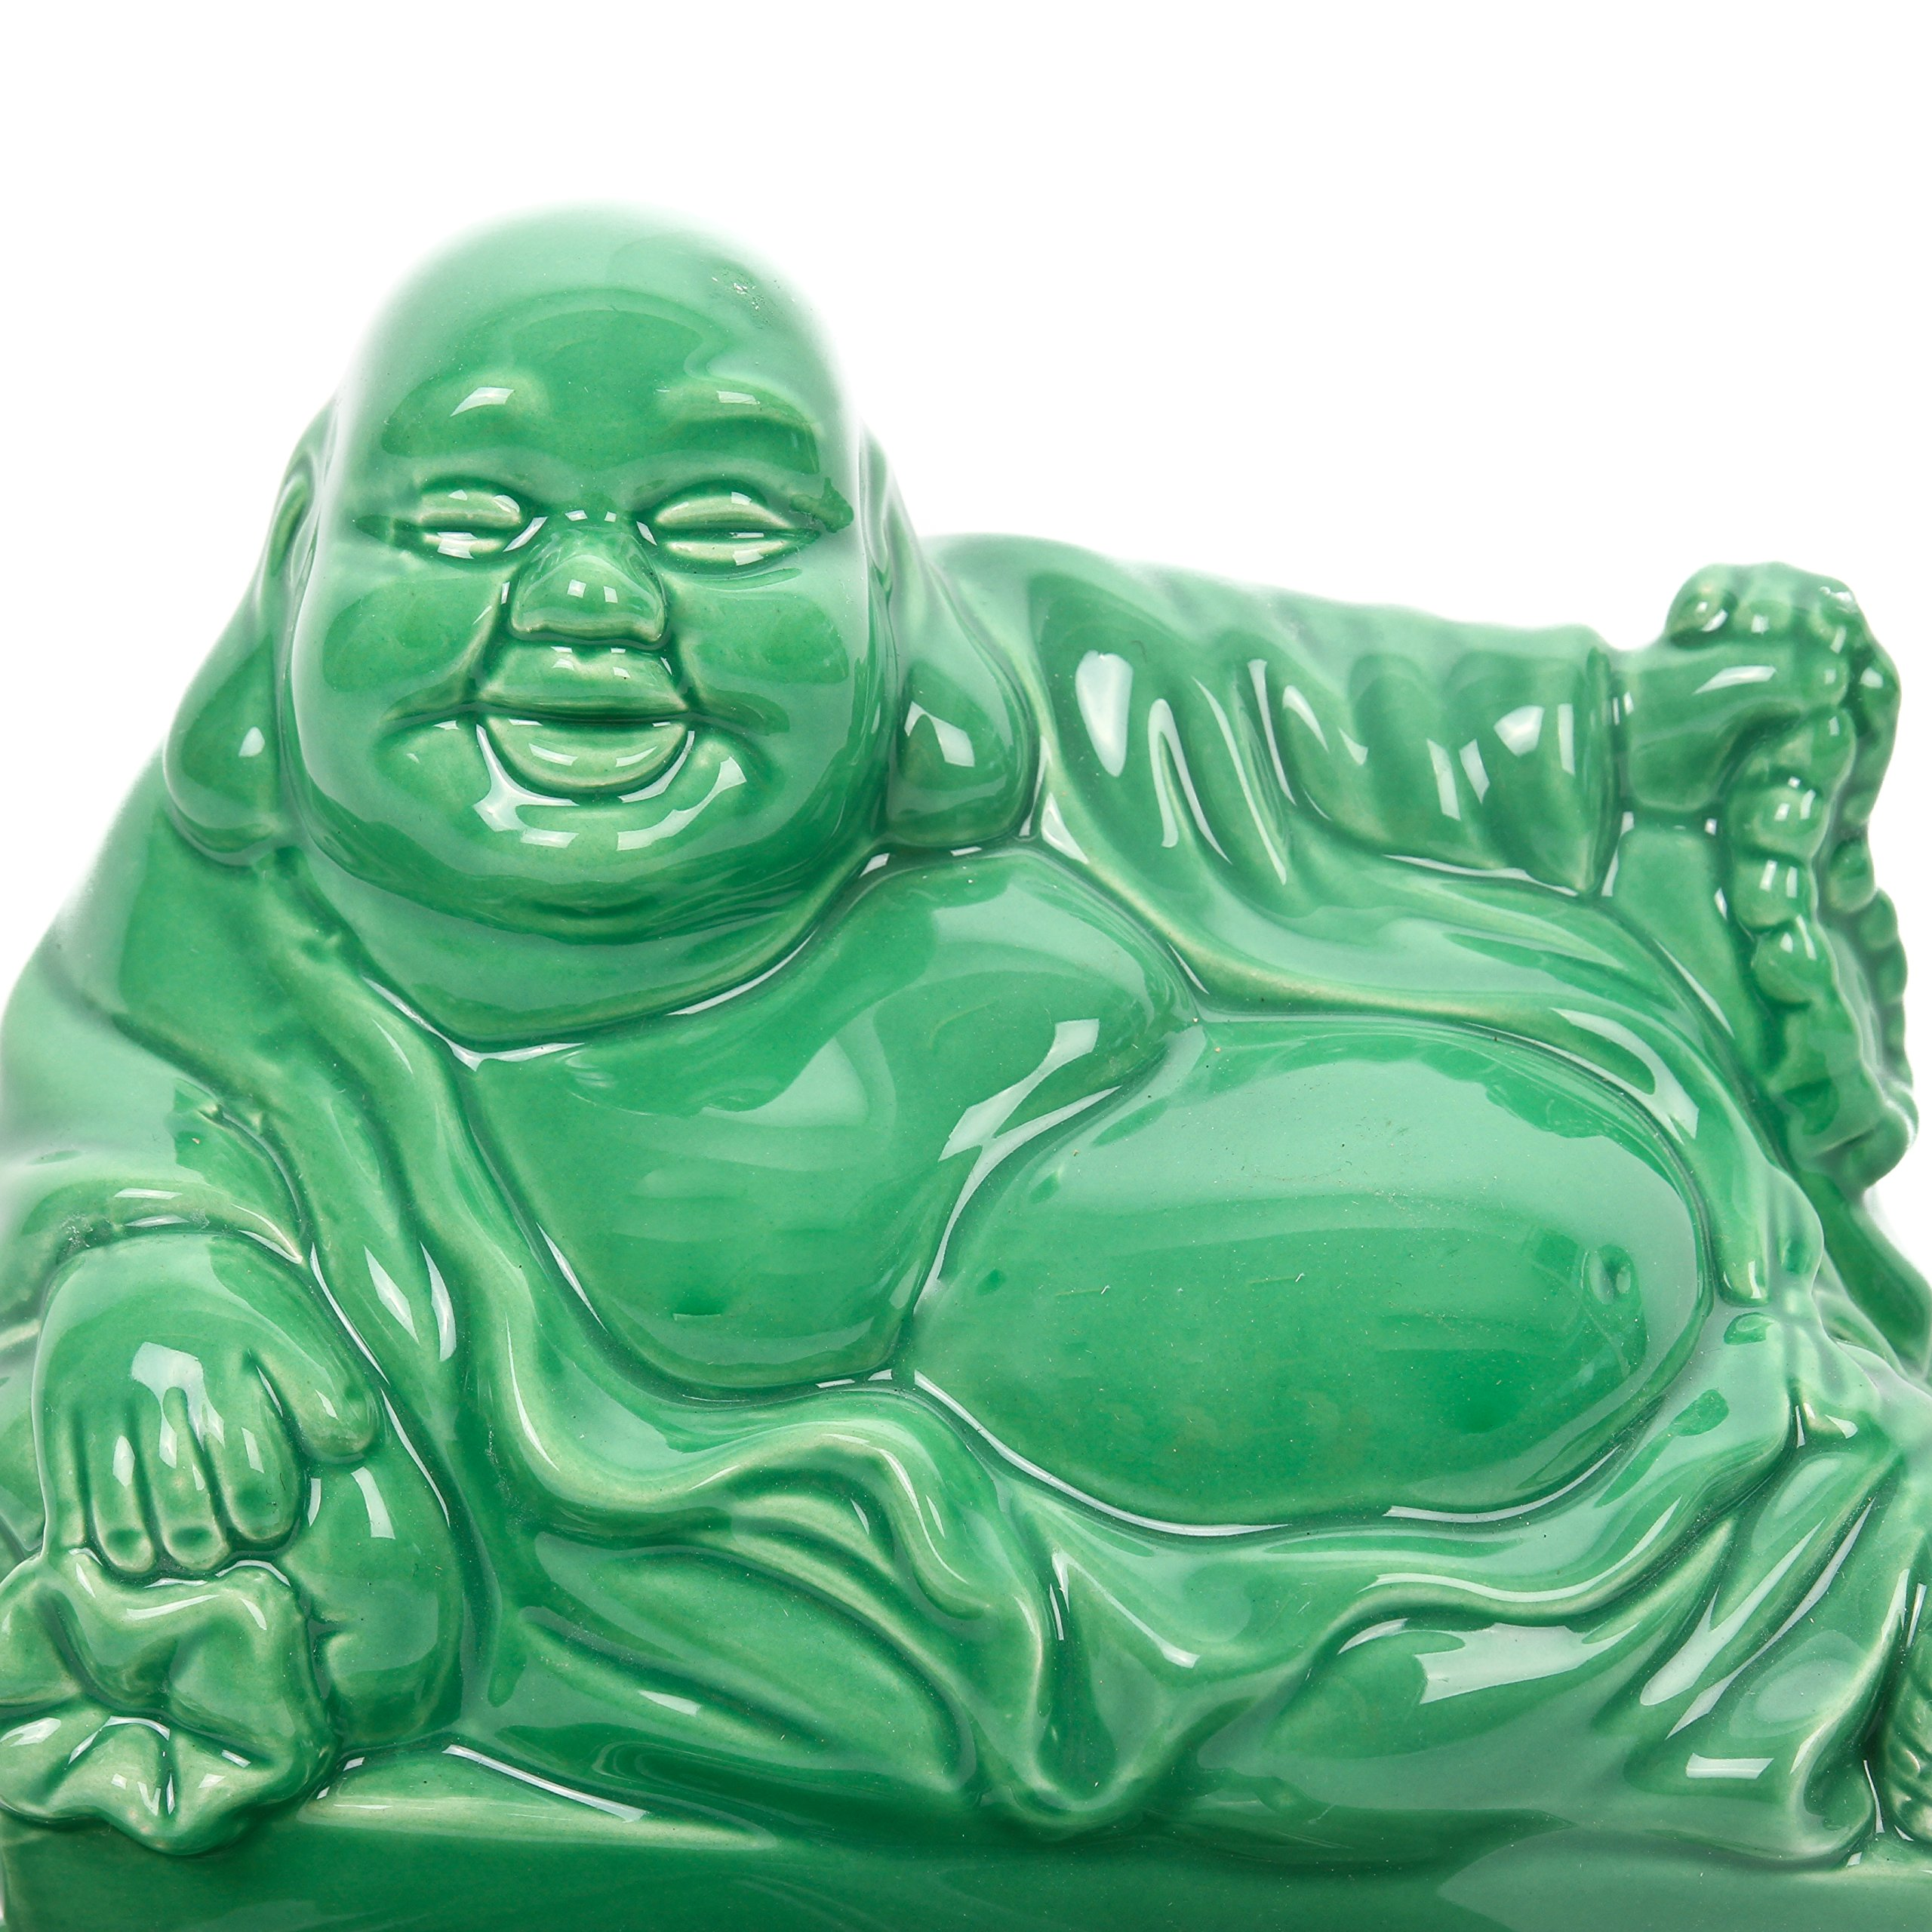 CKB Ltd Buddha Budai Decoration Vintage Home Butter Dish - Novelty Cool Tray with Lid (Jade Green)